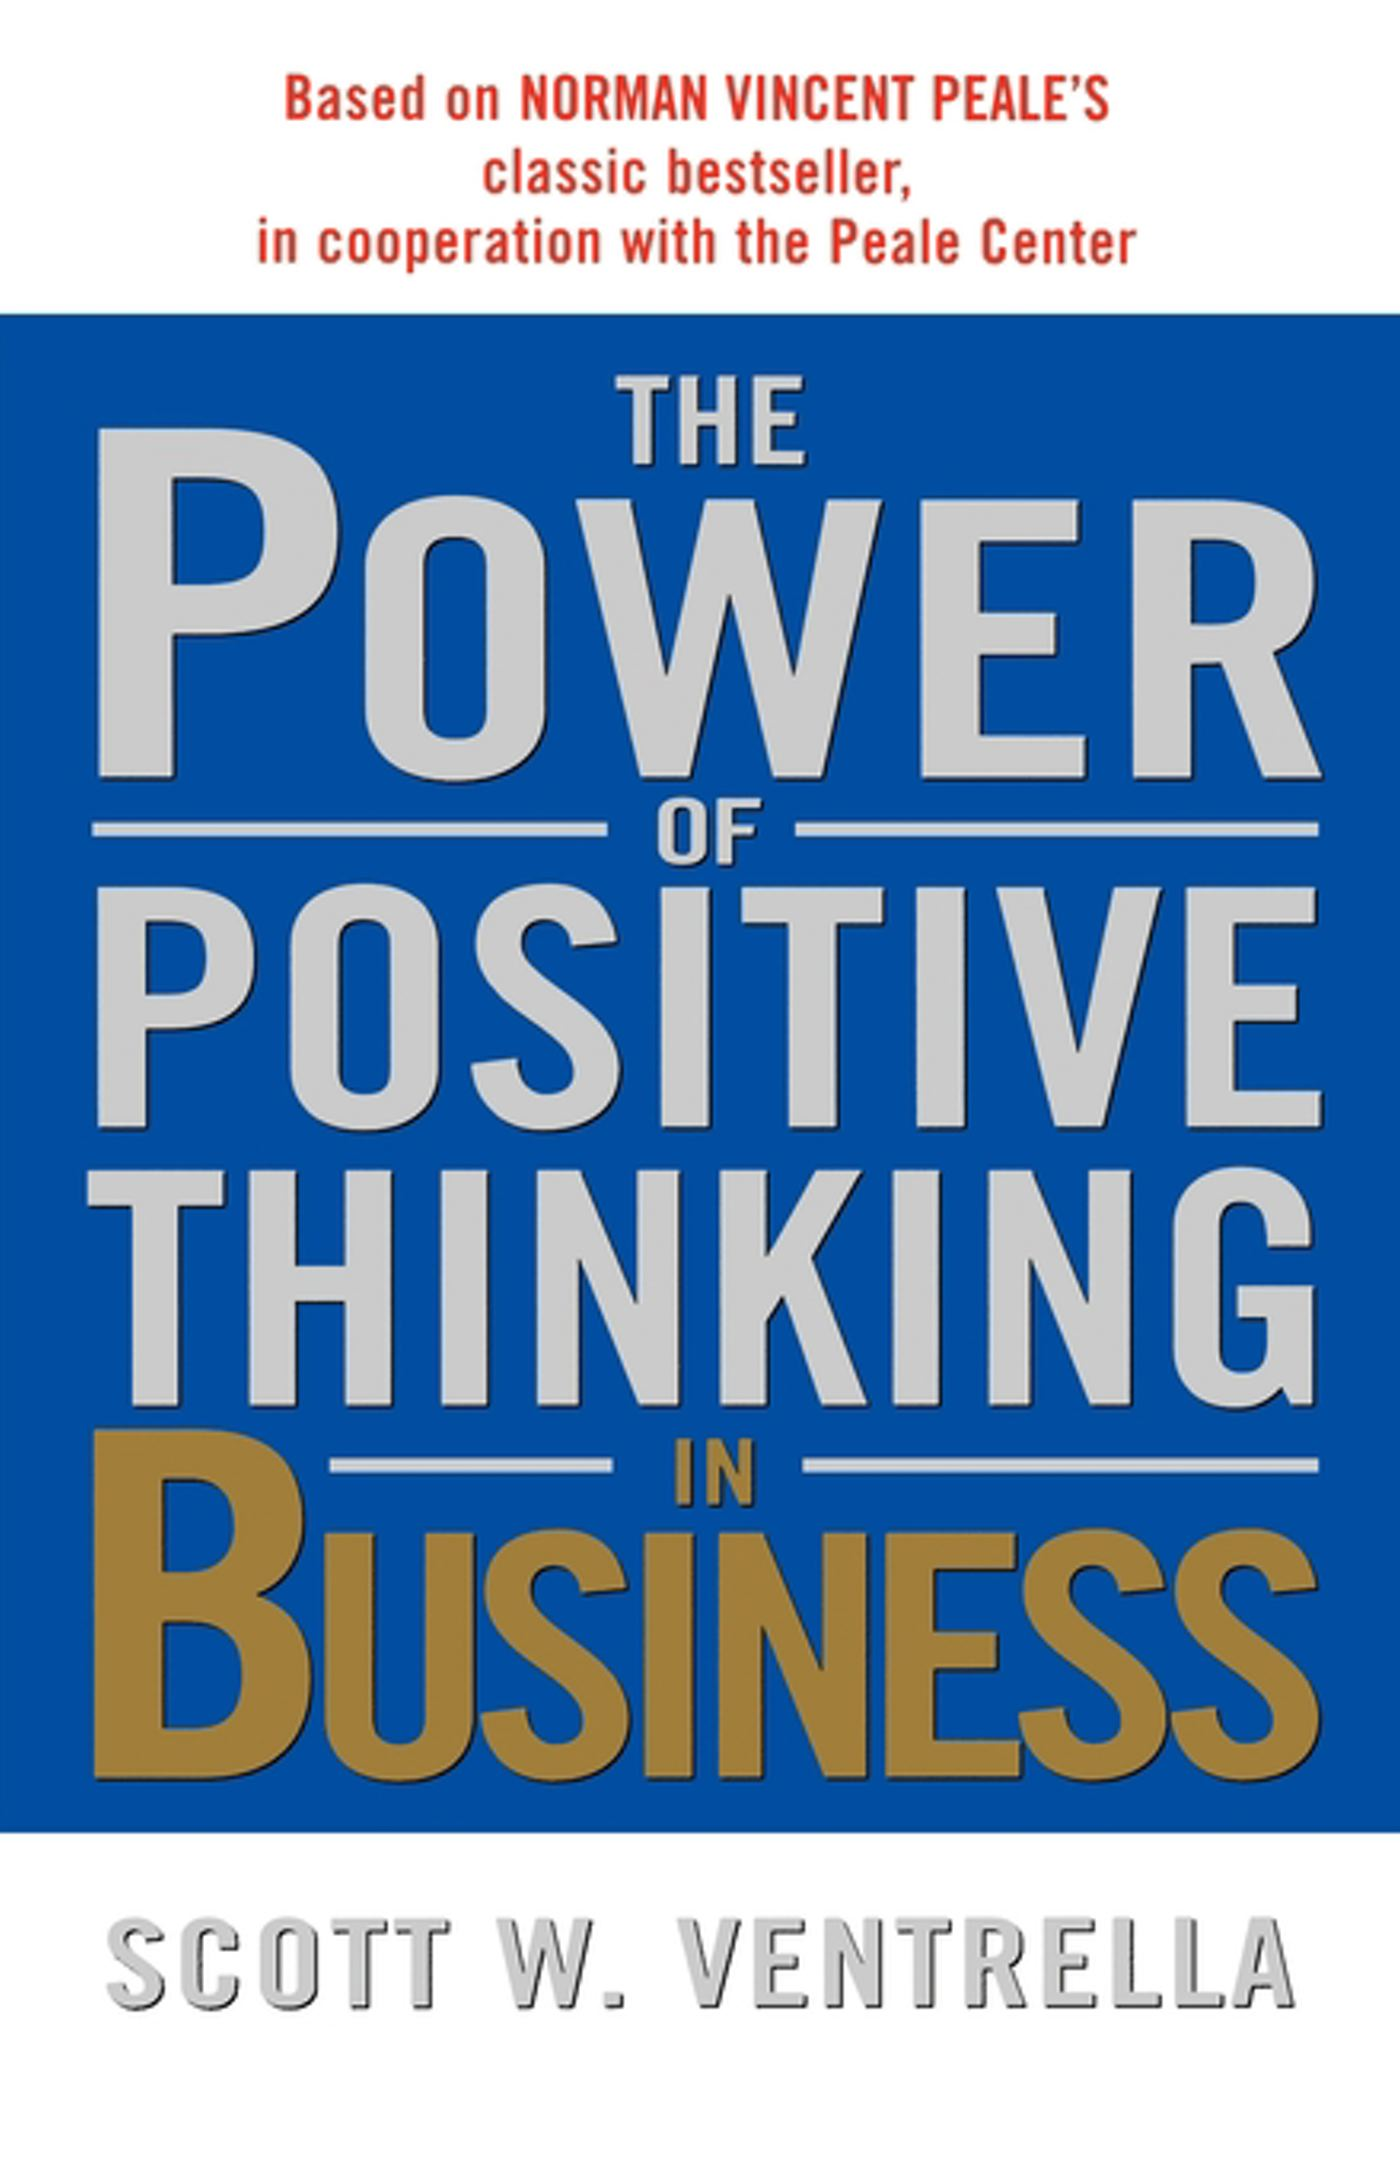 Download Ebook The Power of Positive Thinking in Business by Scott W. Ventrella Pdf